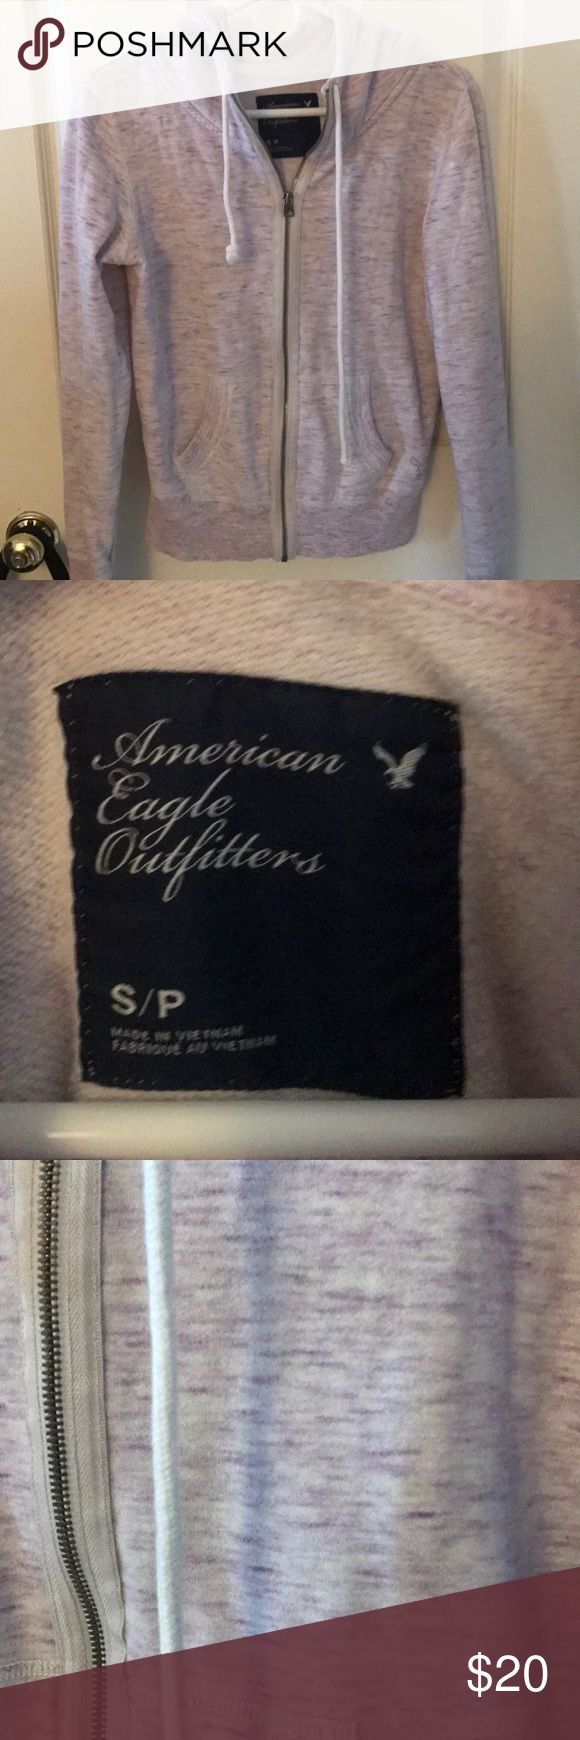 🦄American Eagle purple zip up hoodie size s/p Cute purple colored American Eagle zip up hoodie in size S/P. In fantastic condition. 60% cotton 40% polyester. Smoke free home. Bundle and save. Please check out my closet for more clothes, makeup and one of a kind Handcrafted jewelry. American Eagle Outfitters Tops Sweatshirts & Hoodies